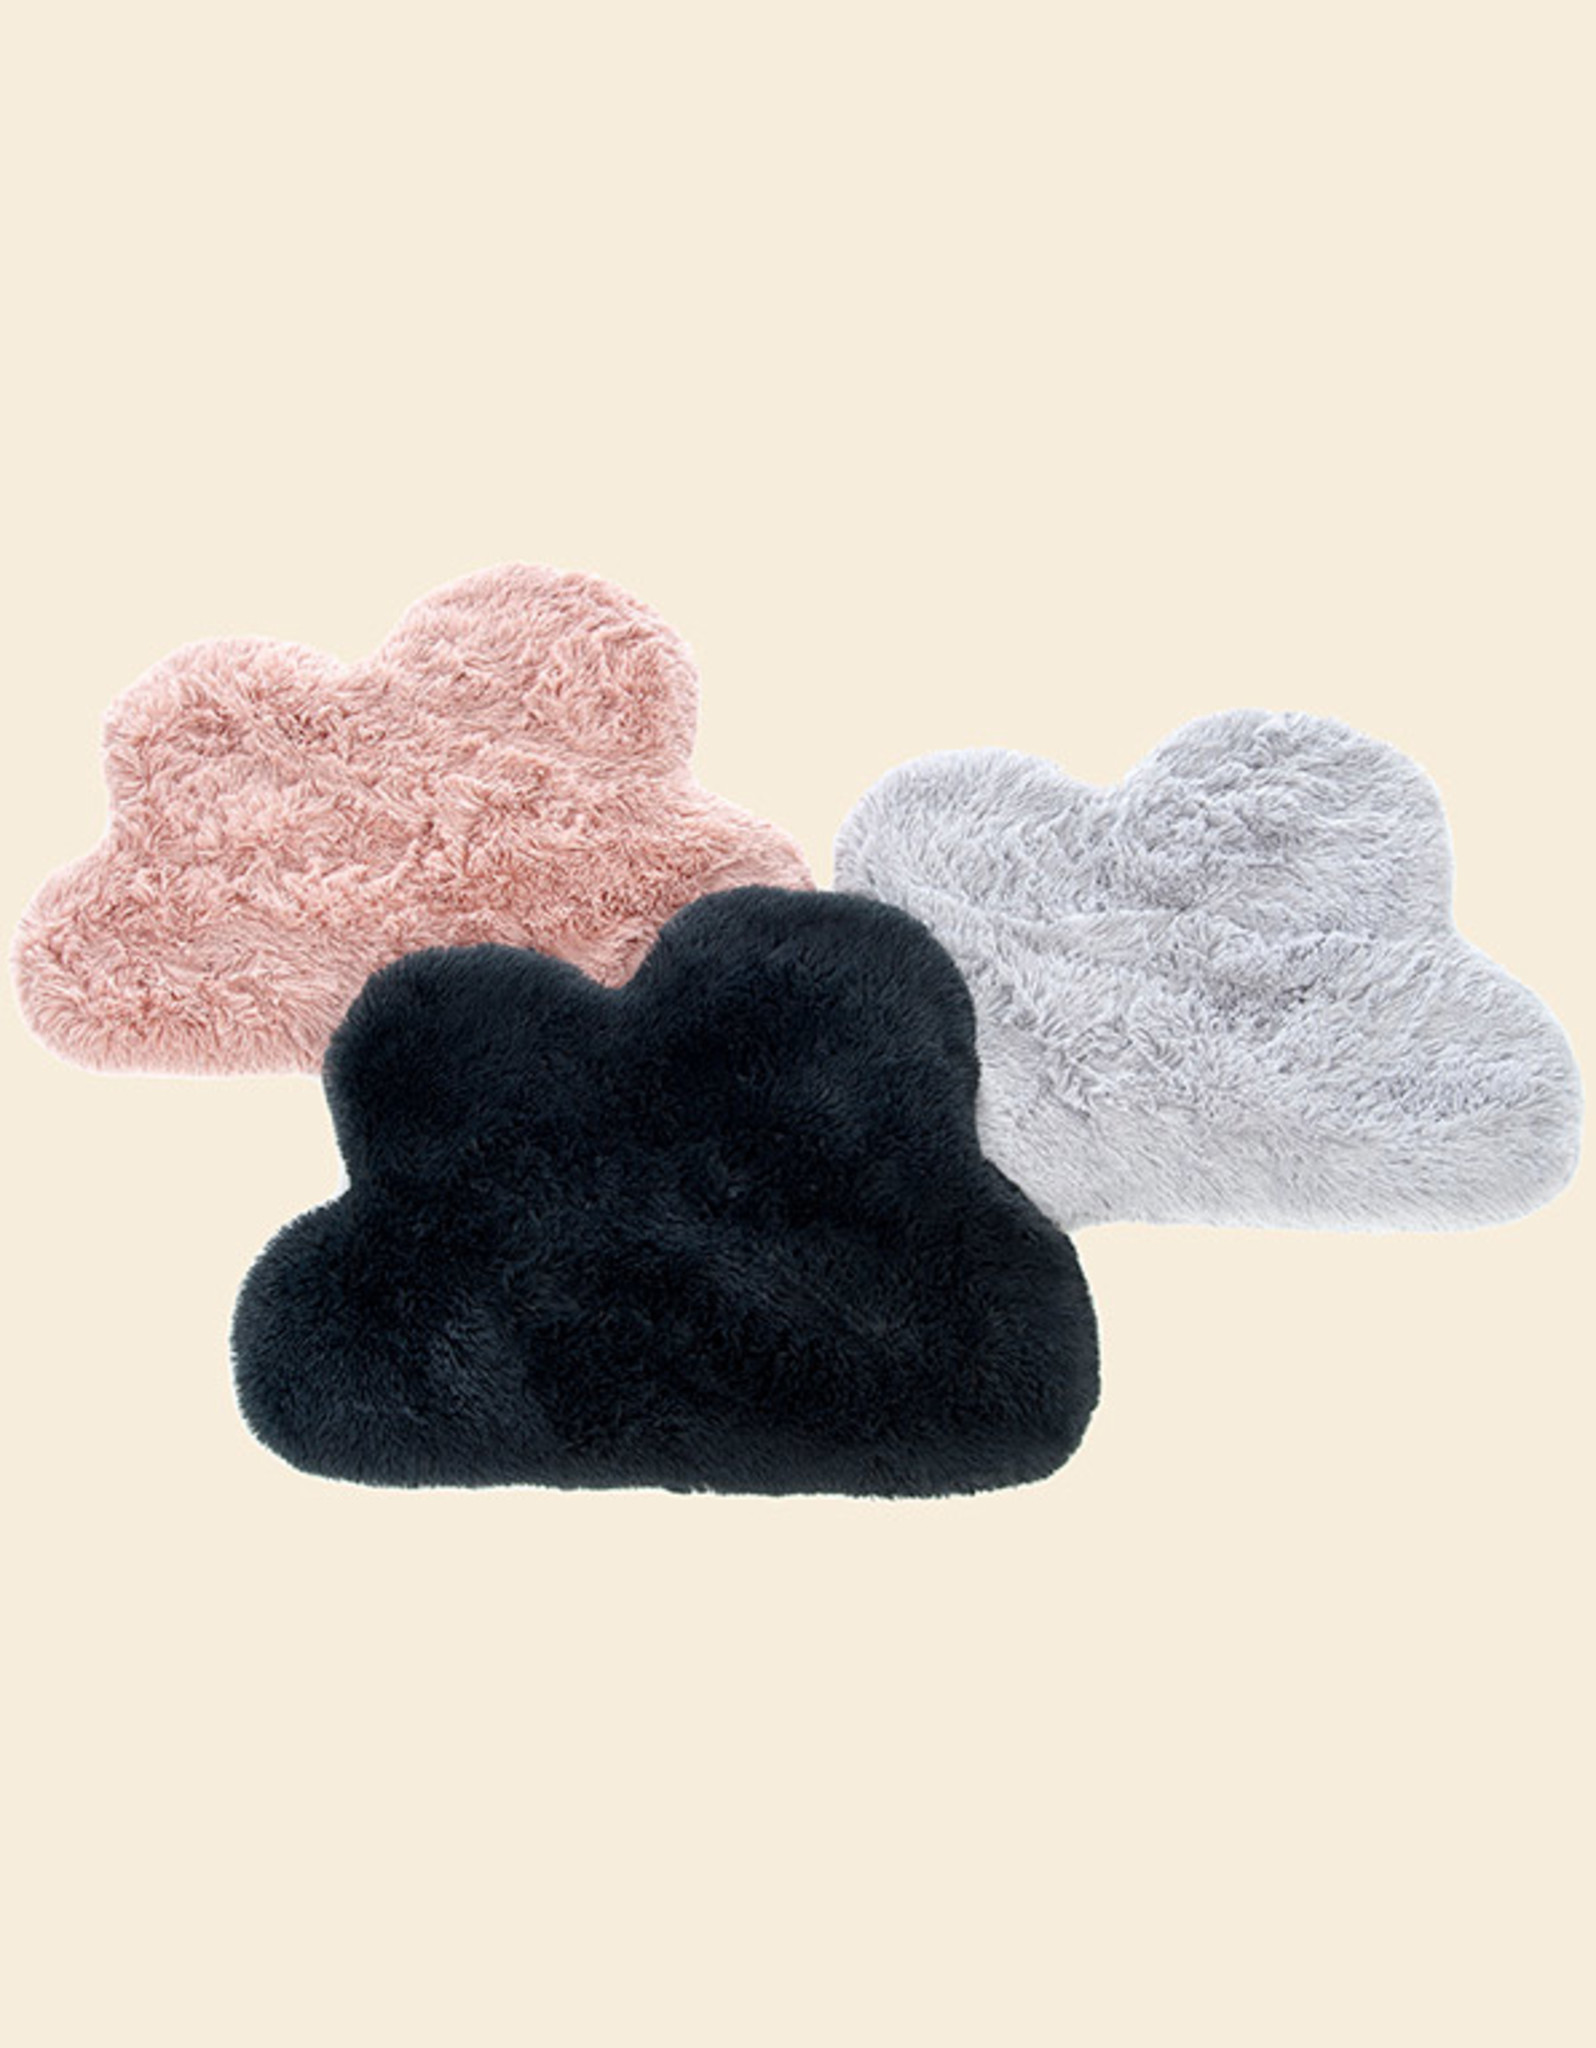 Fluffy Mat | available in 3 colors